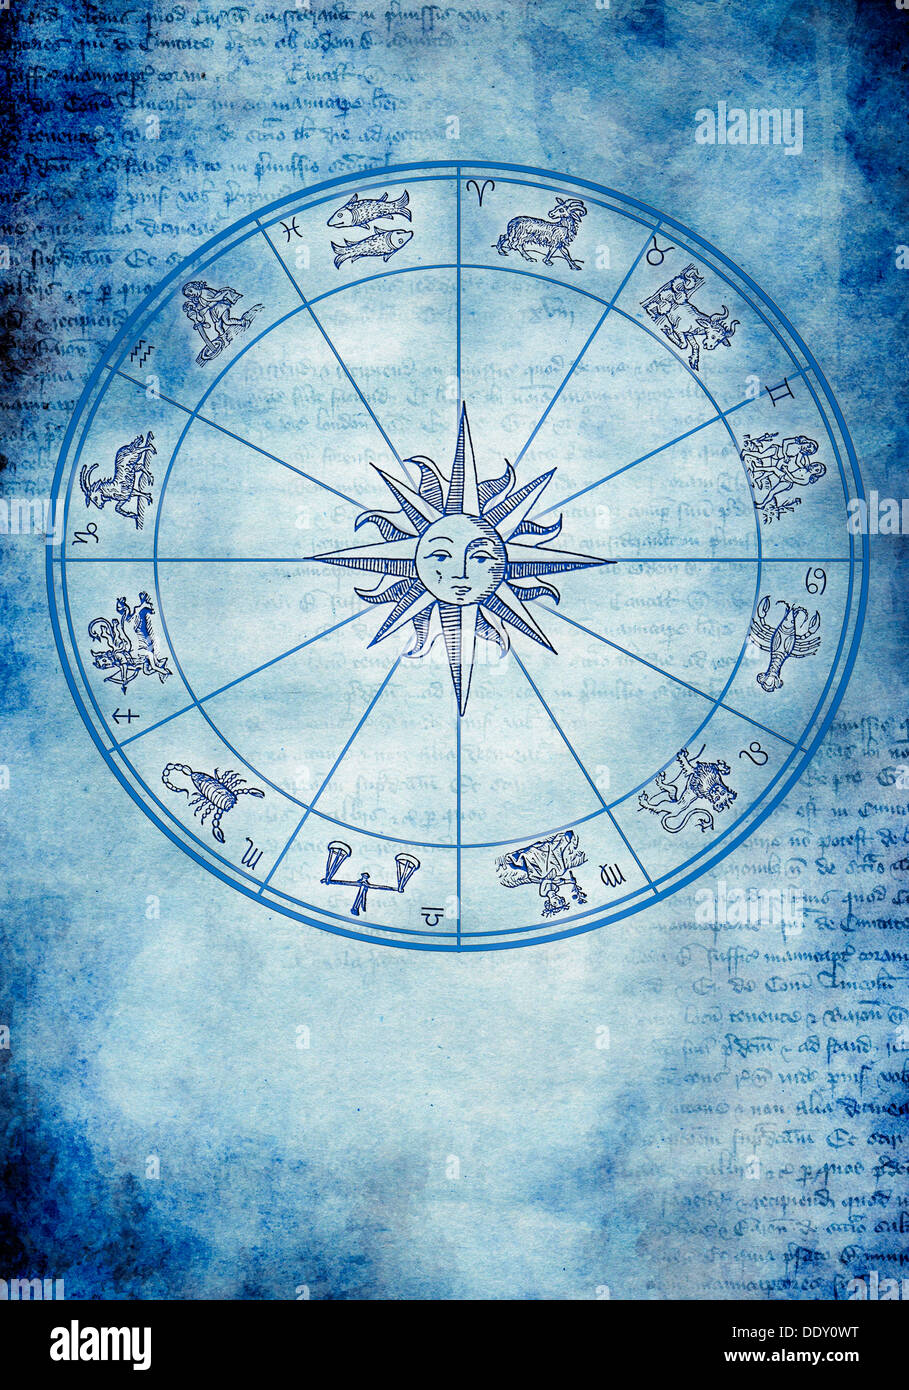 zodiac signs antique - Stock Image